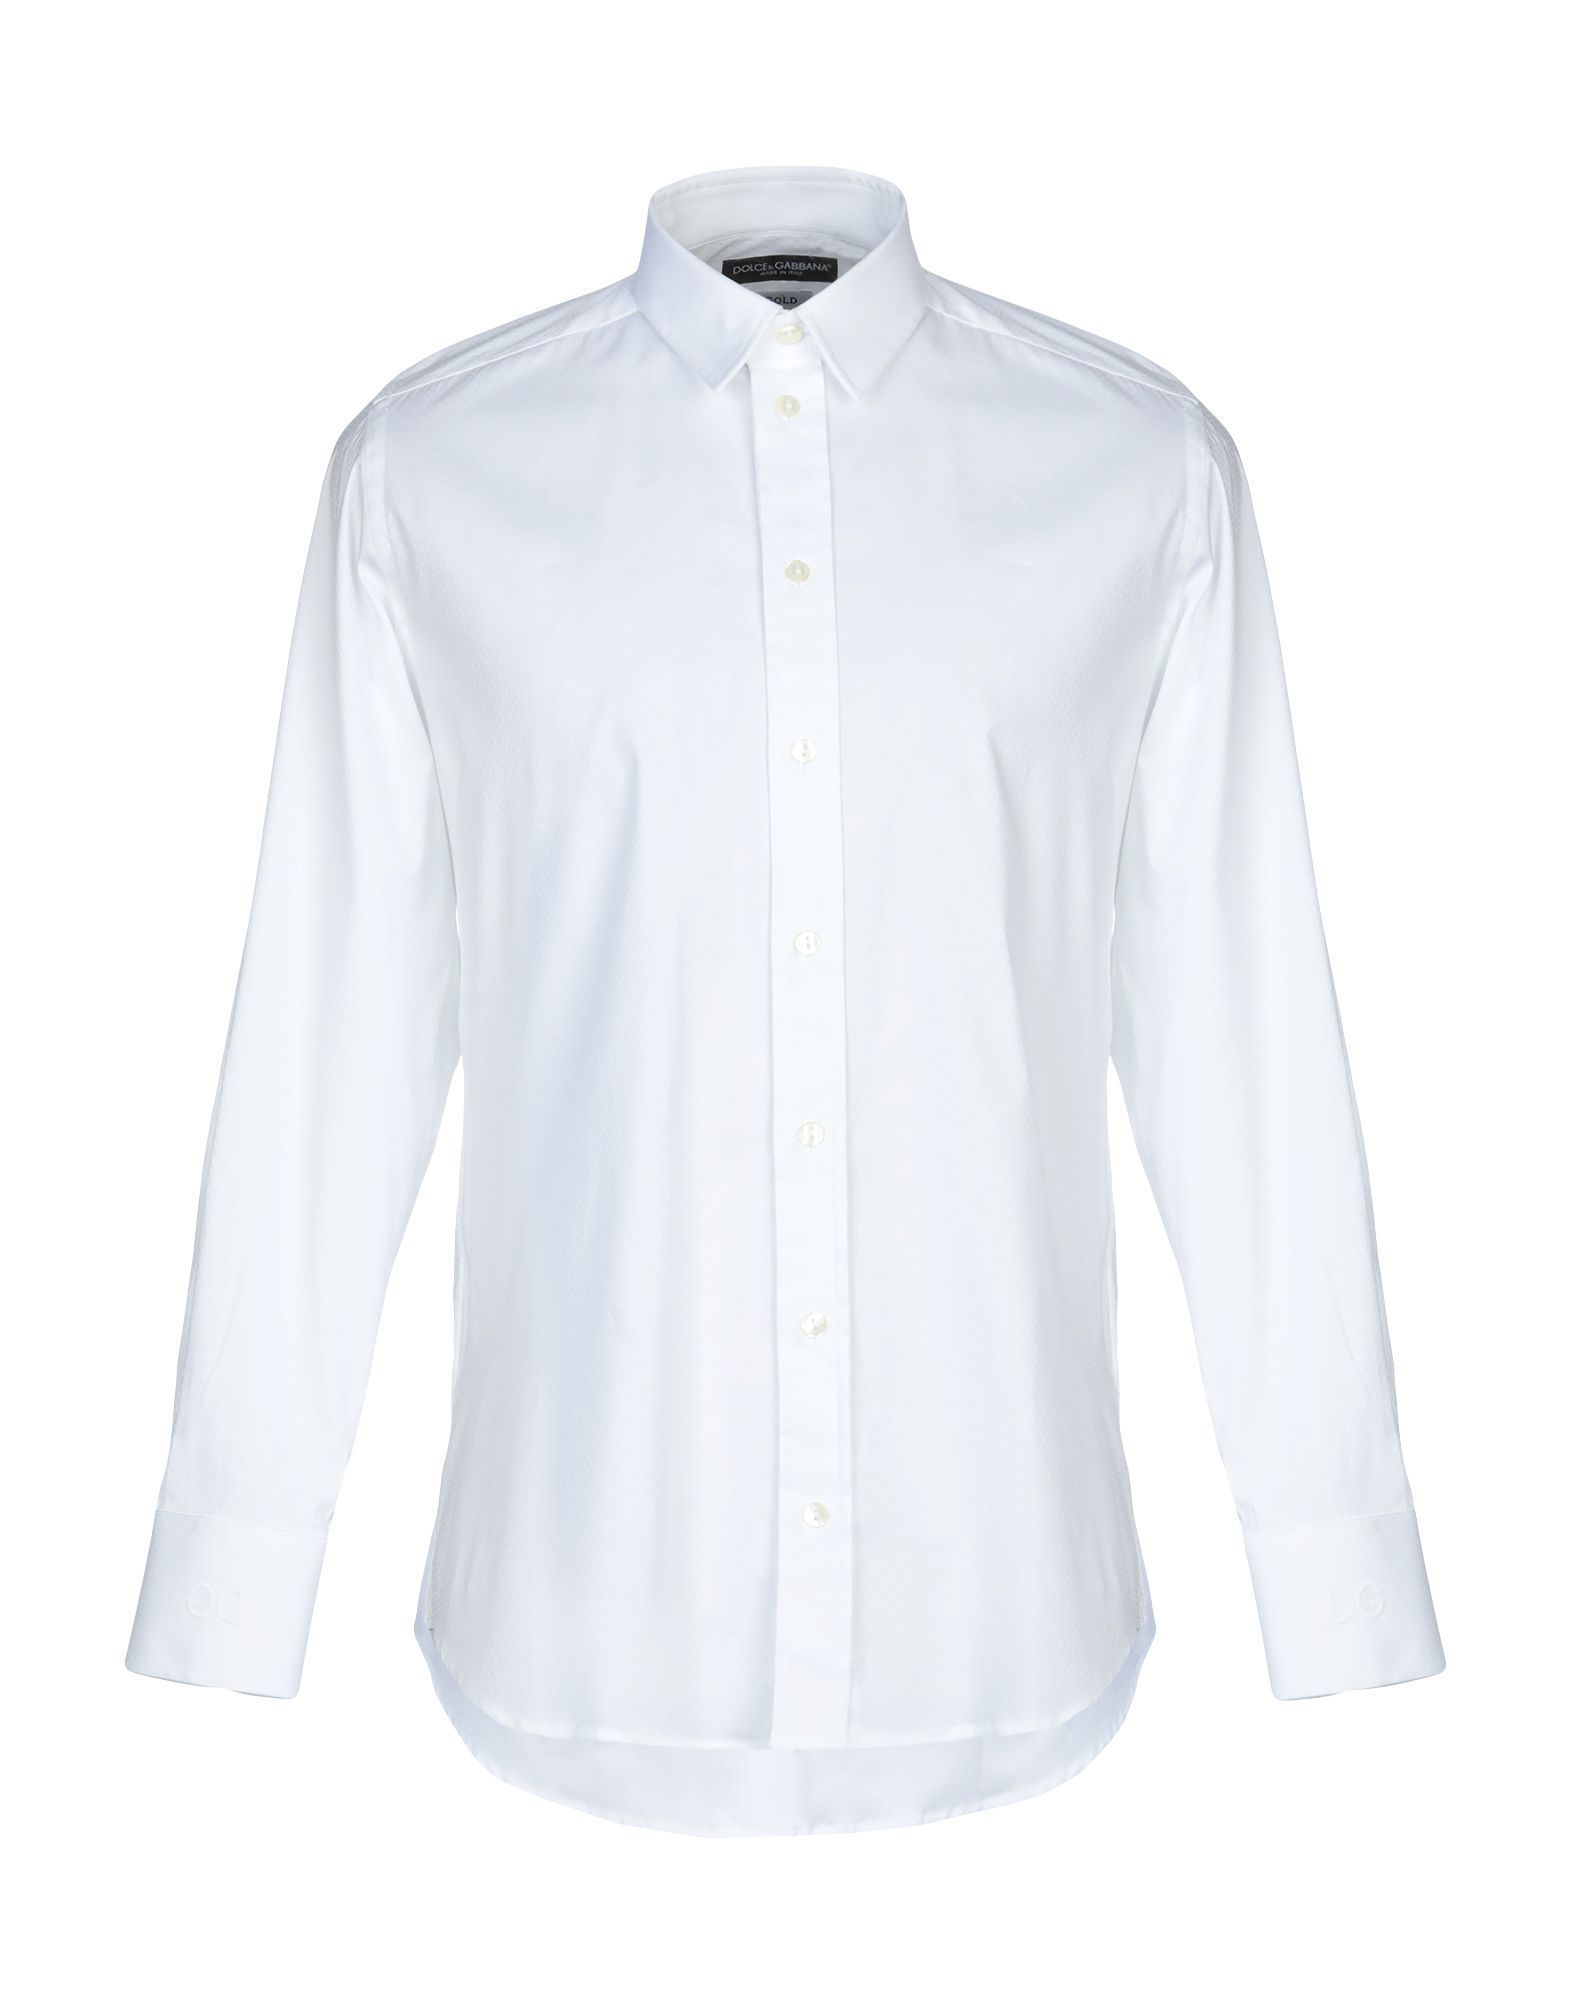 Dolce & Gabbana White Cotton Shirt